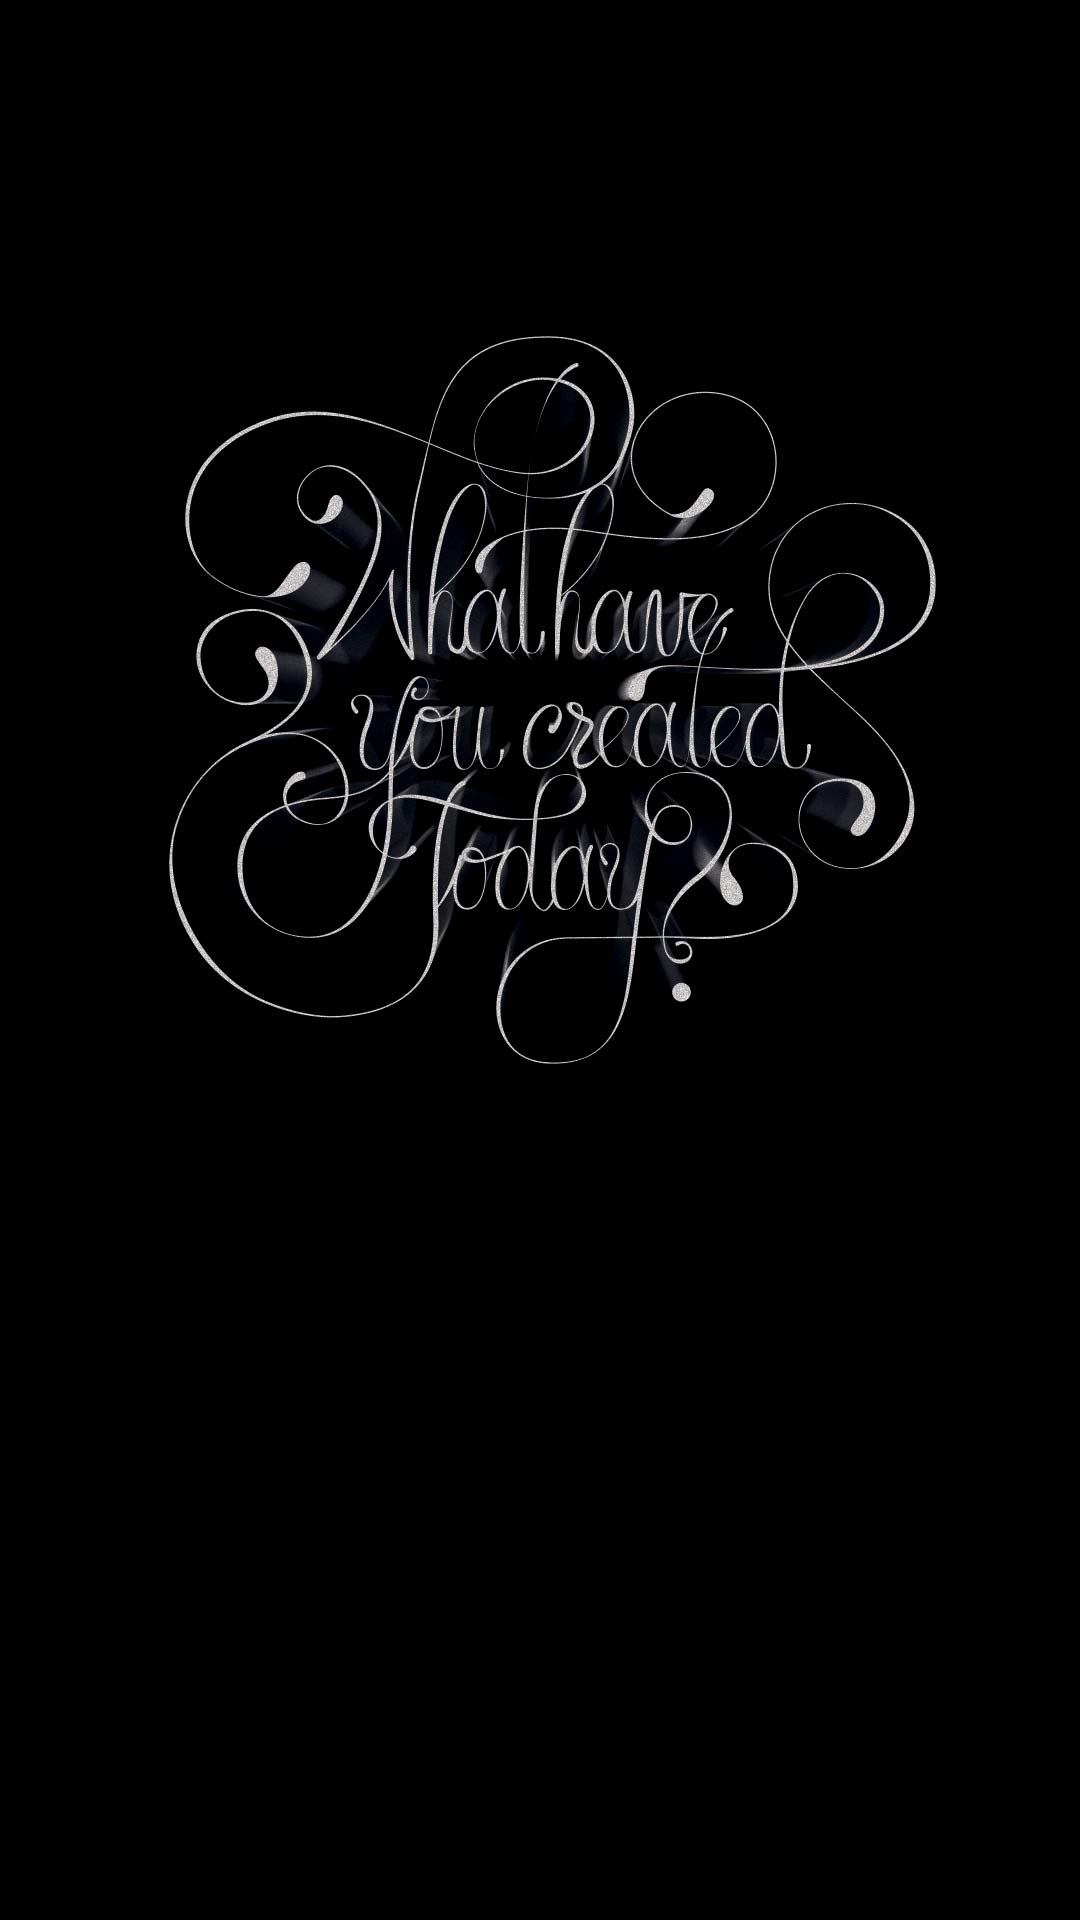 Hd wallpaper iphone 7 - Typography Iphone 7 Plus Wallpaper